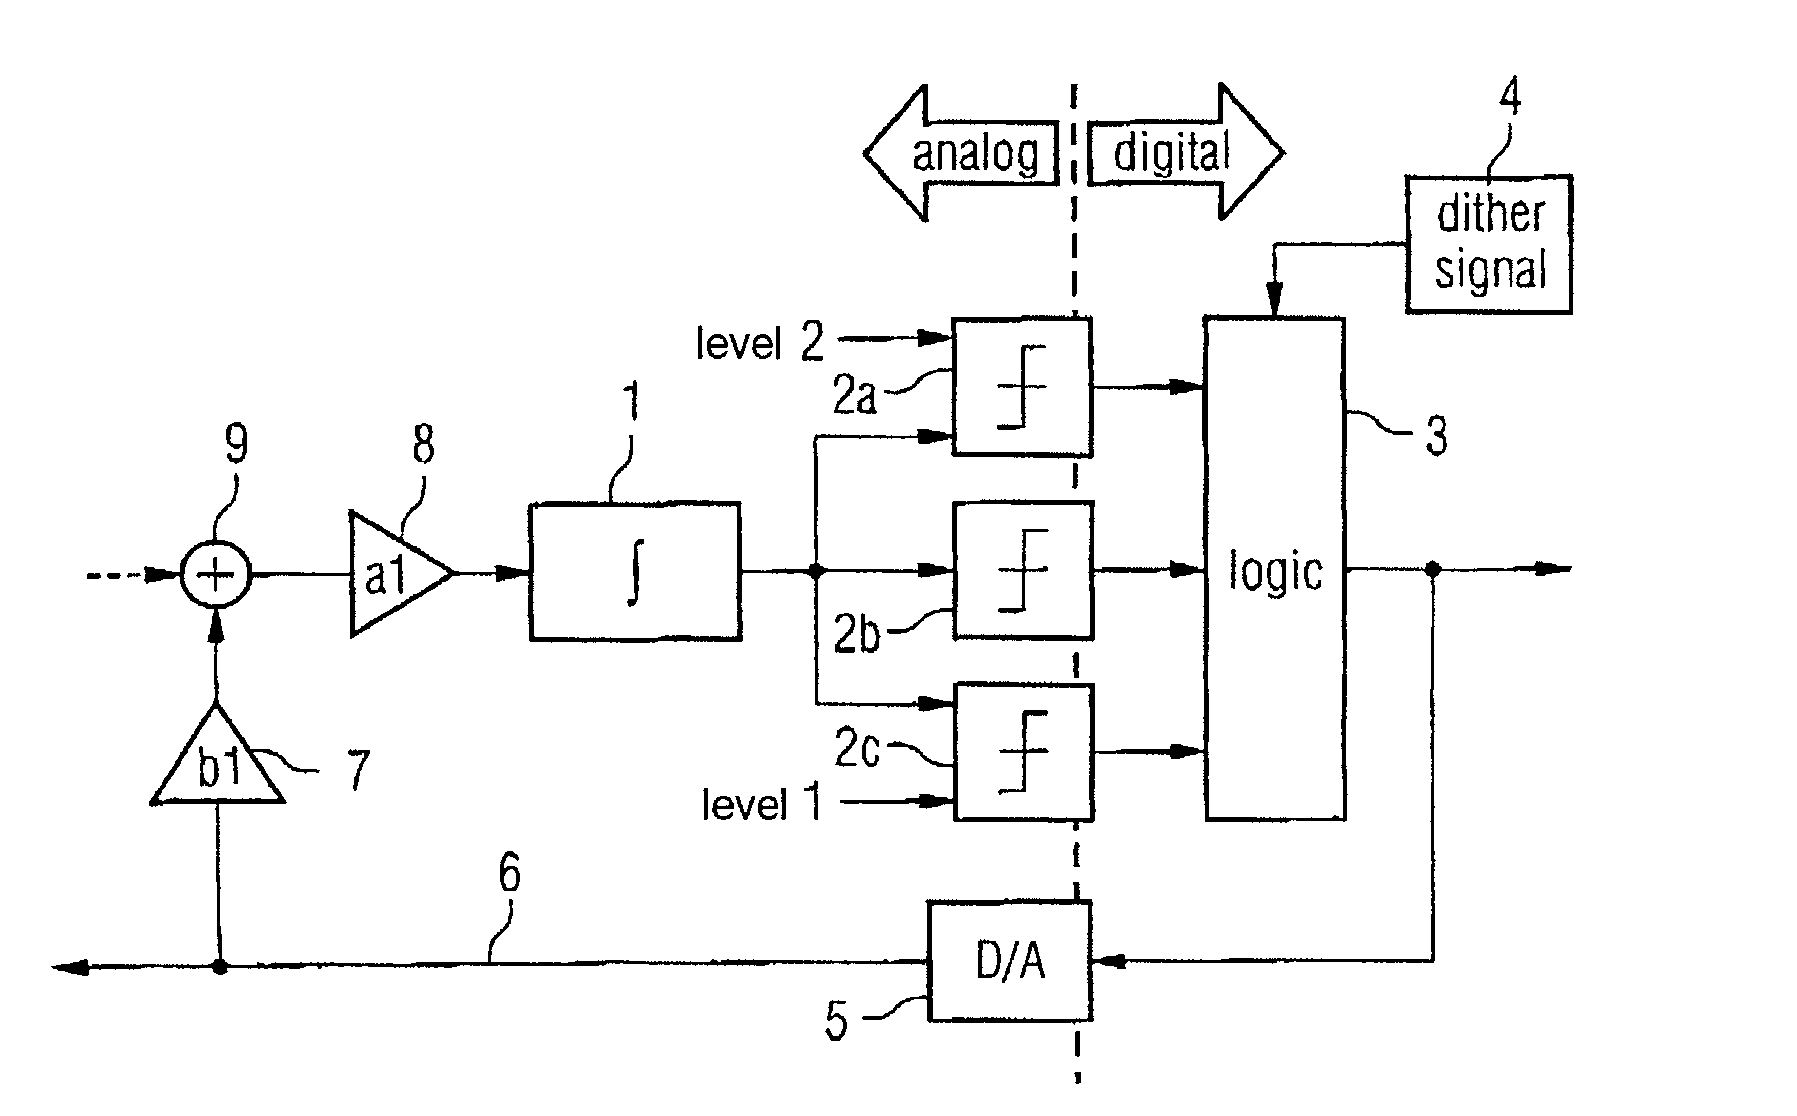 Patent Us20030112163 Sd Adc With Digital Dither Signal Processing 2 Level Logic Diagram Drawing